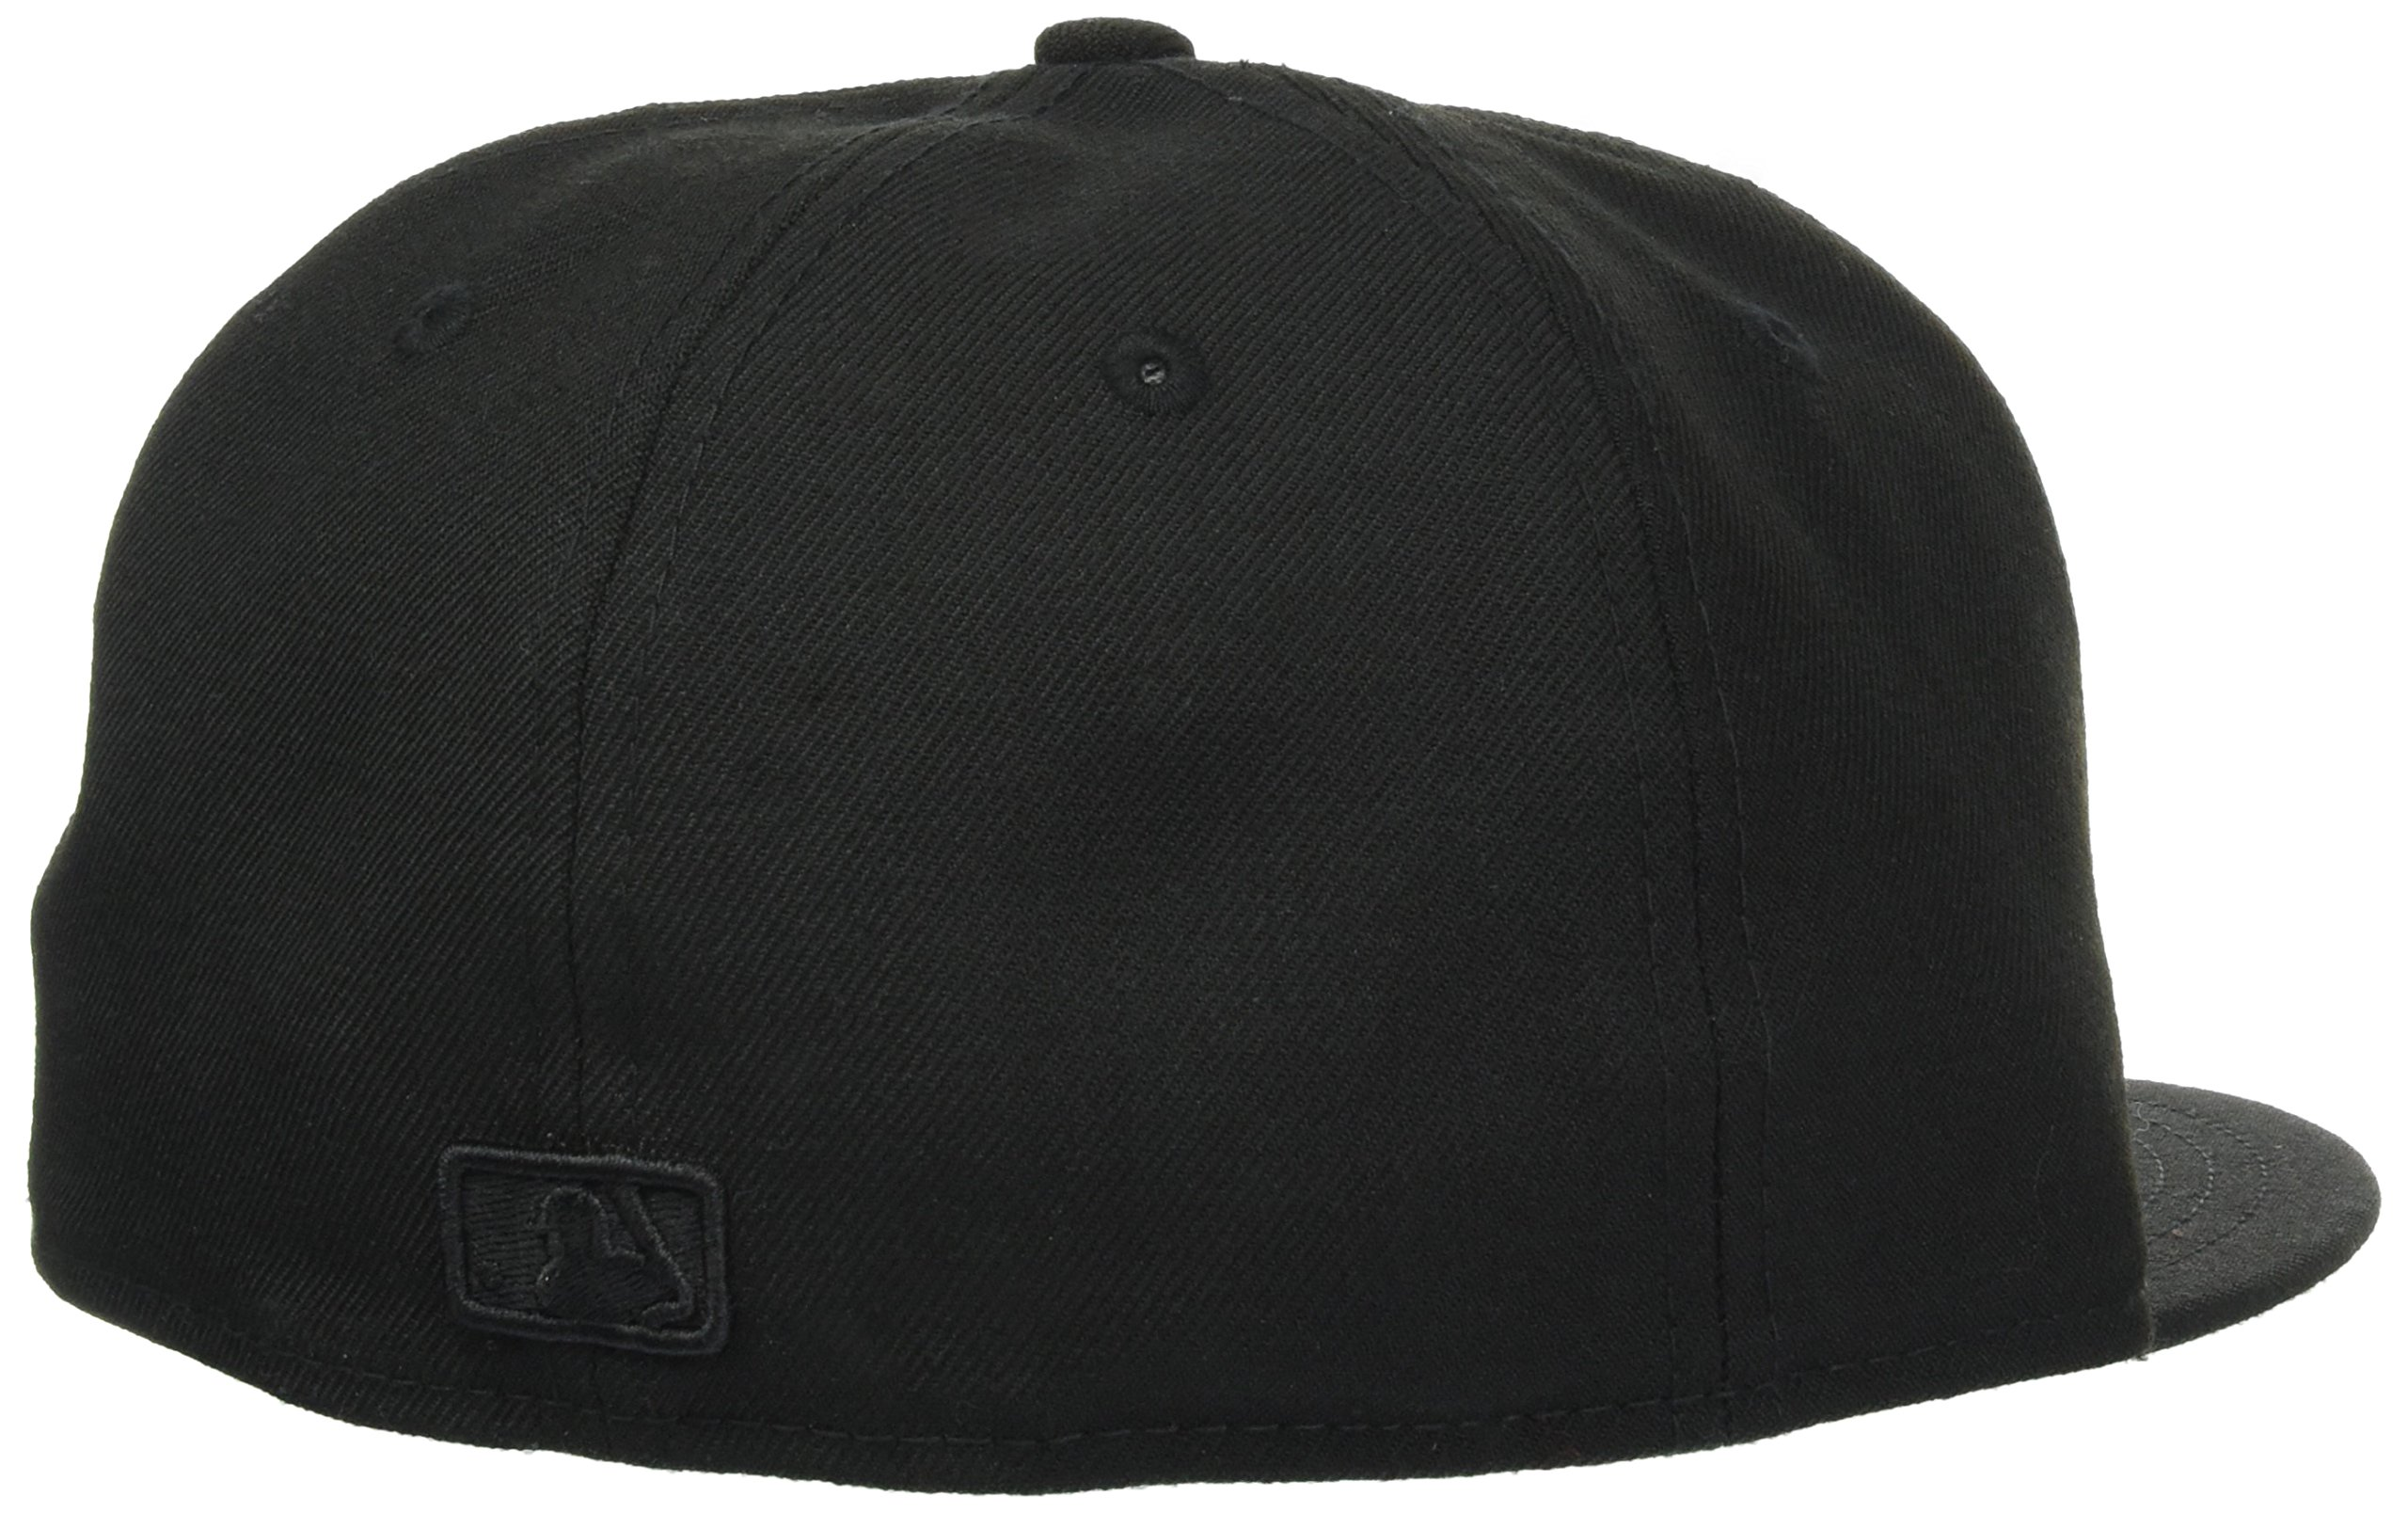 NEW ERA 59 FIFTY NY YANKEES CAPPELLO CON VISIERA COLORE NERO BLACK ... 1a1e3bf71ef1